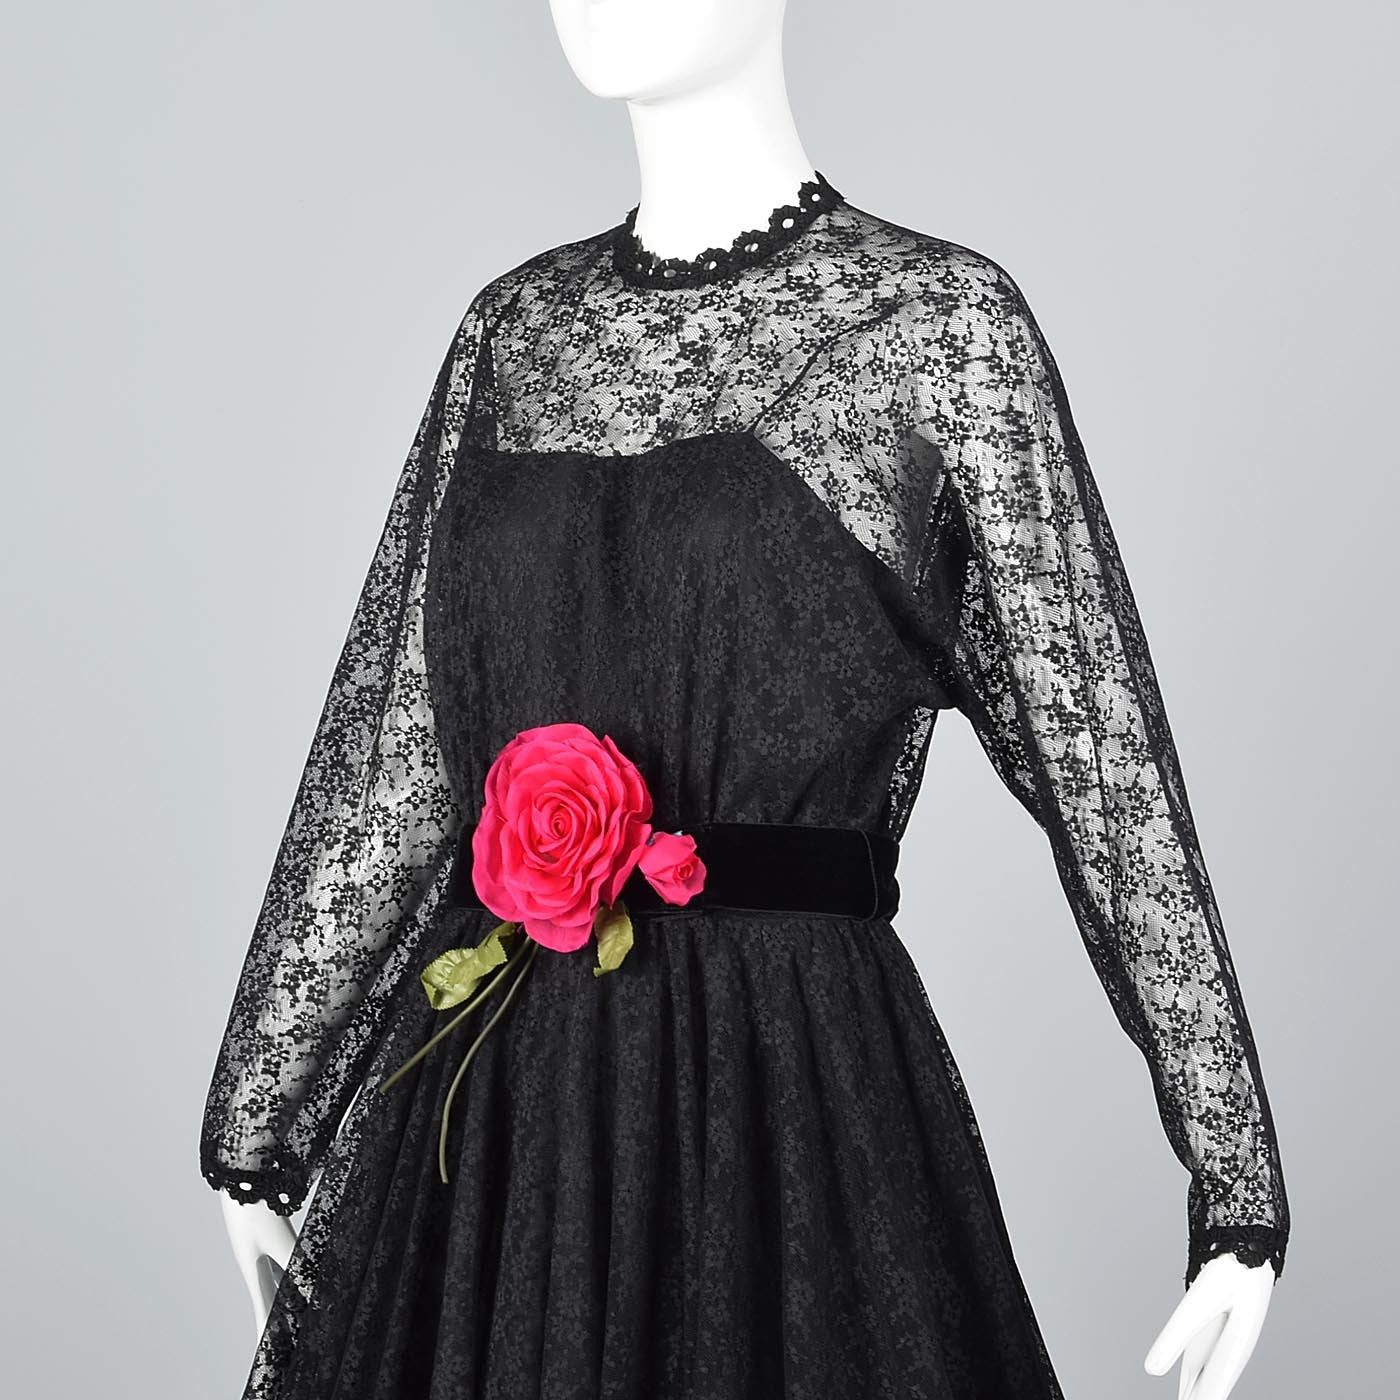 1970s Lilli Diamond Gothic Black Lace Maxi Dress